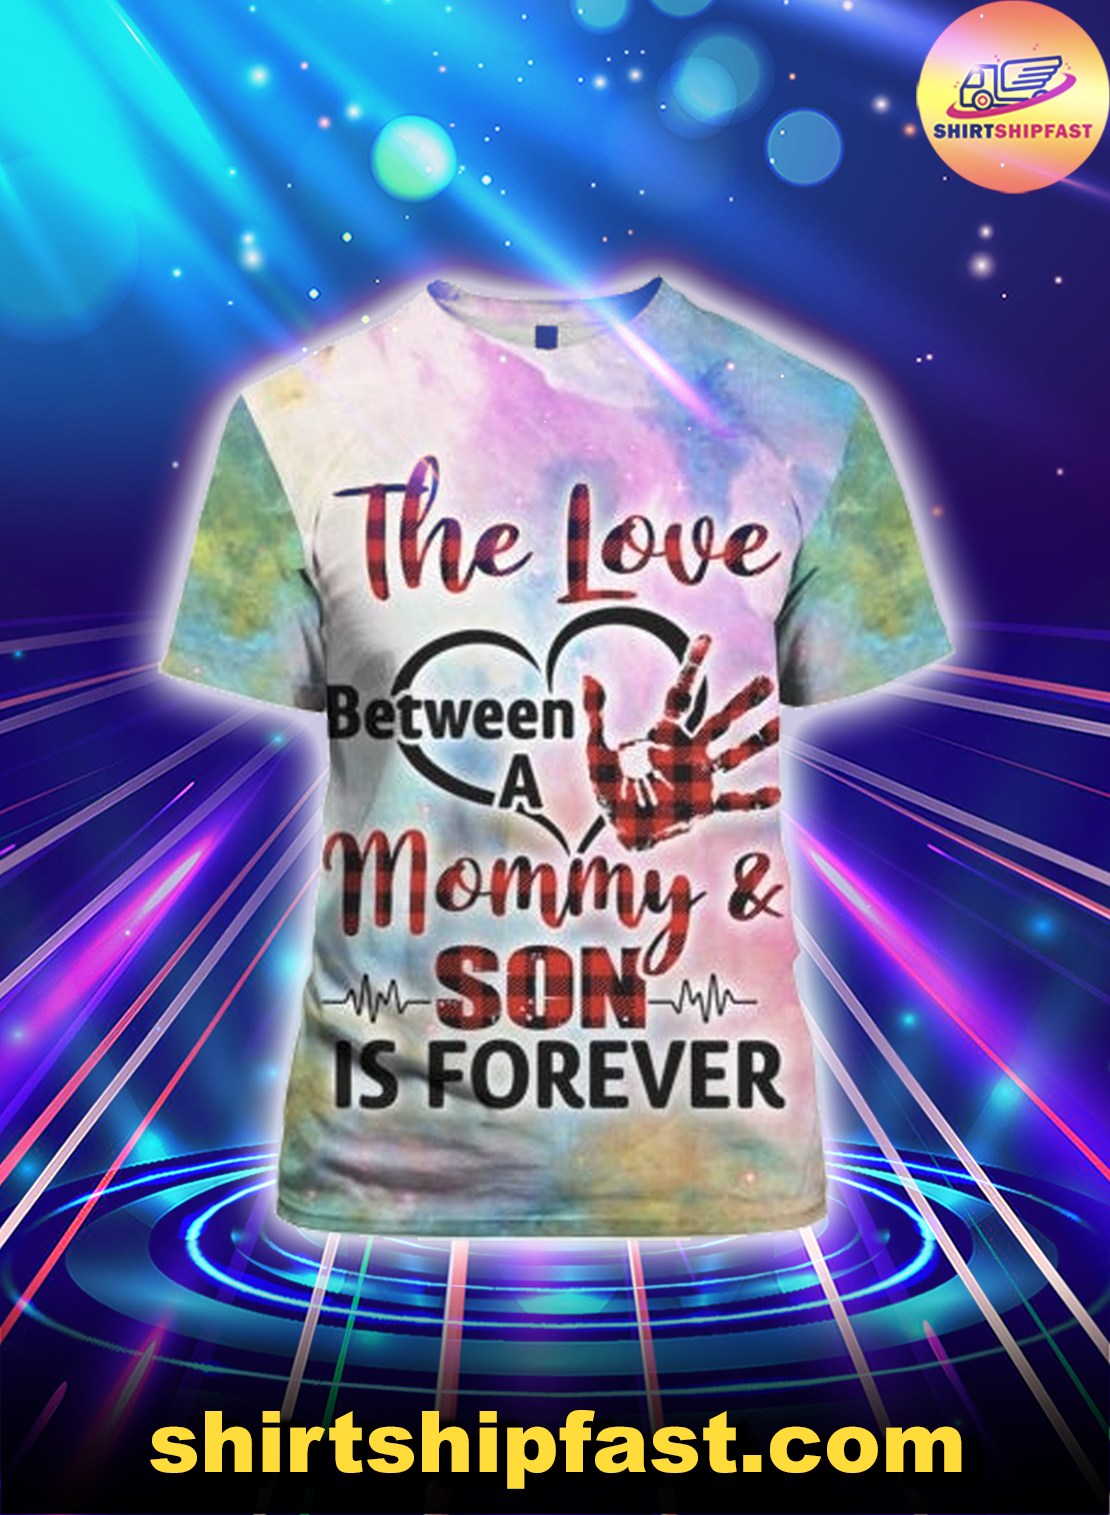 The love between a mommy and son is forever heartbeat 3d t-shirt